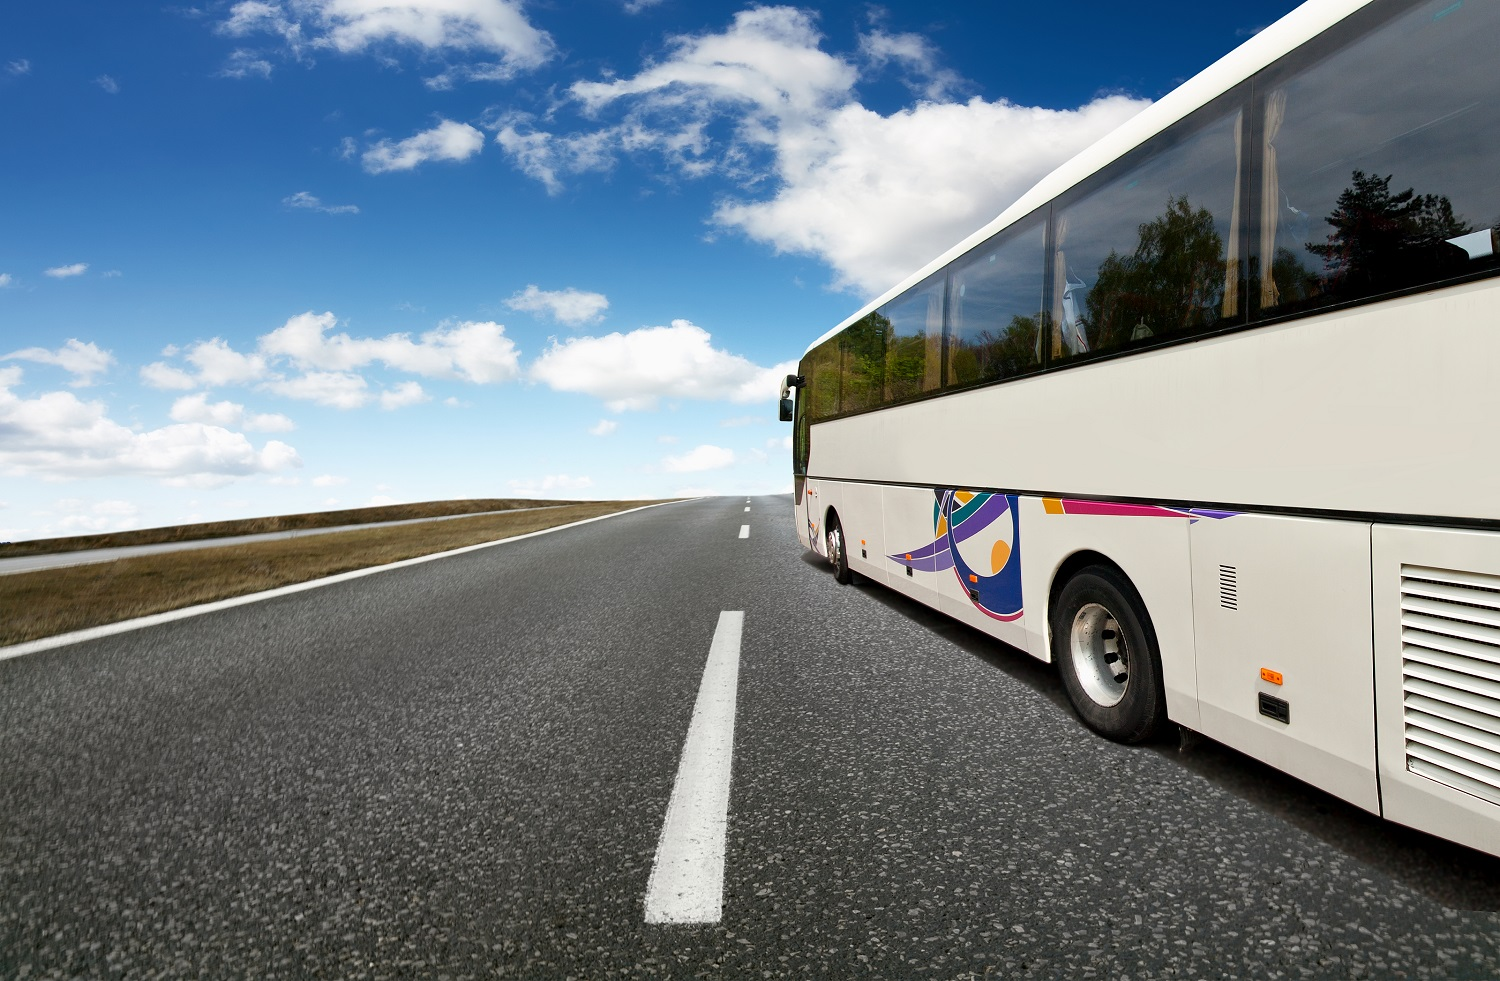 £2.3m Fine for Major Coach Company Following Avoidable Crash